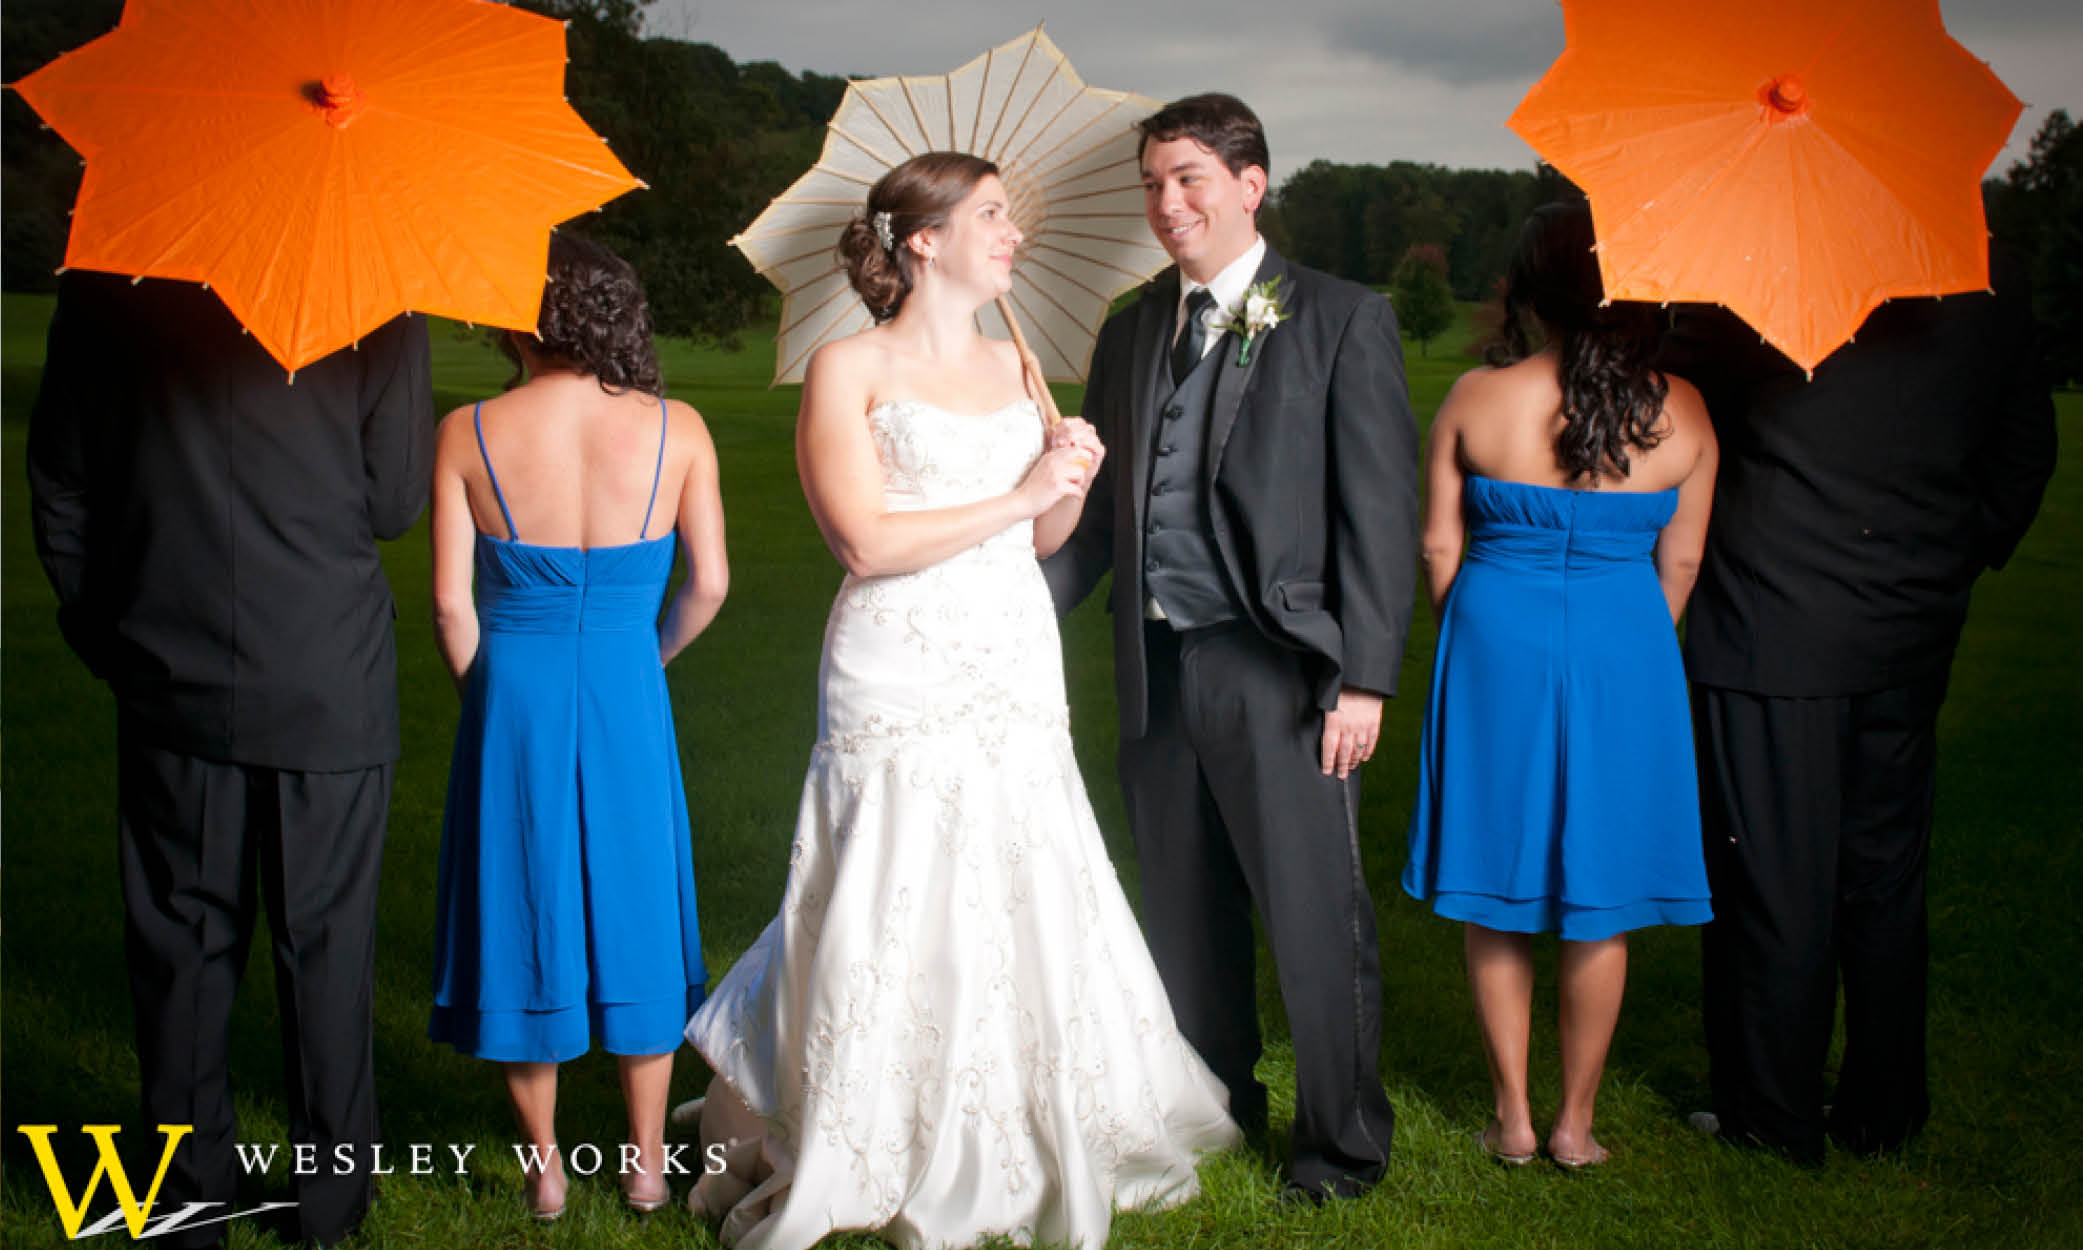 Lehigh Valley Wedding and Reception Sites | Wesley Works ...